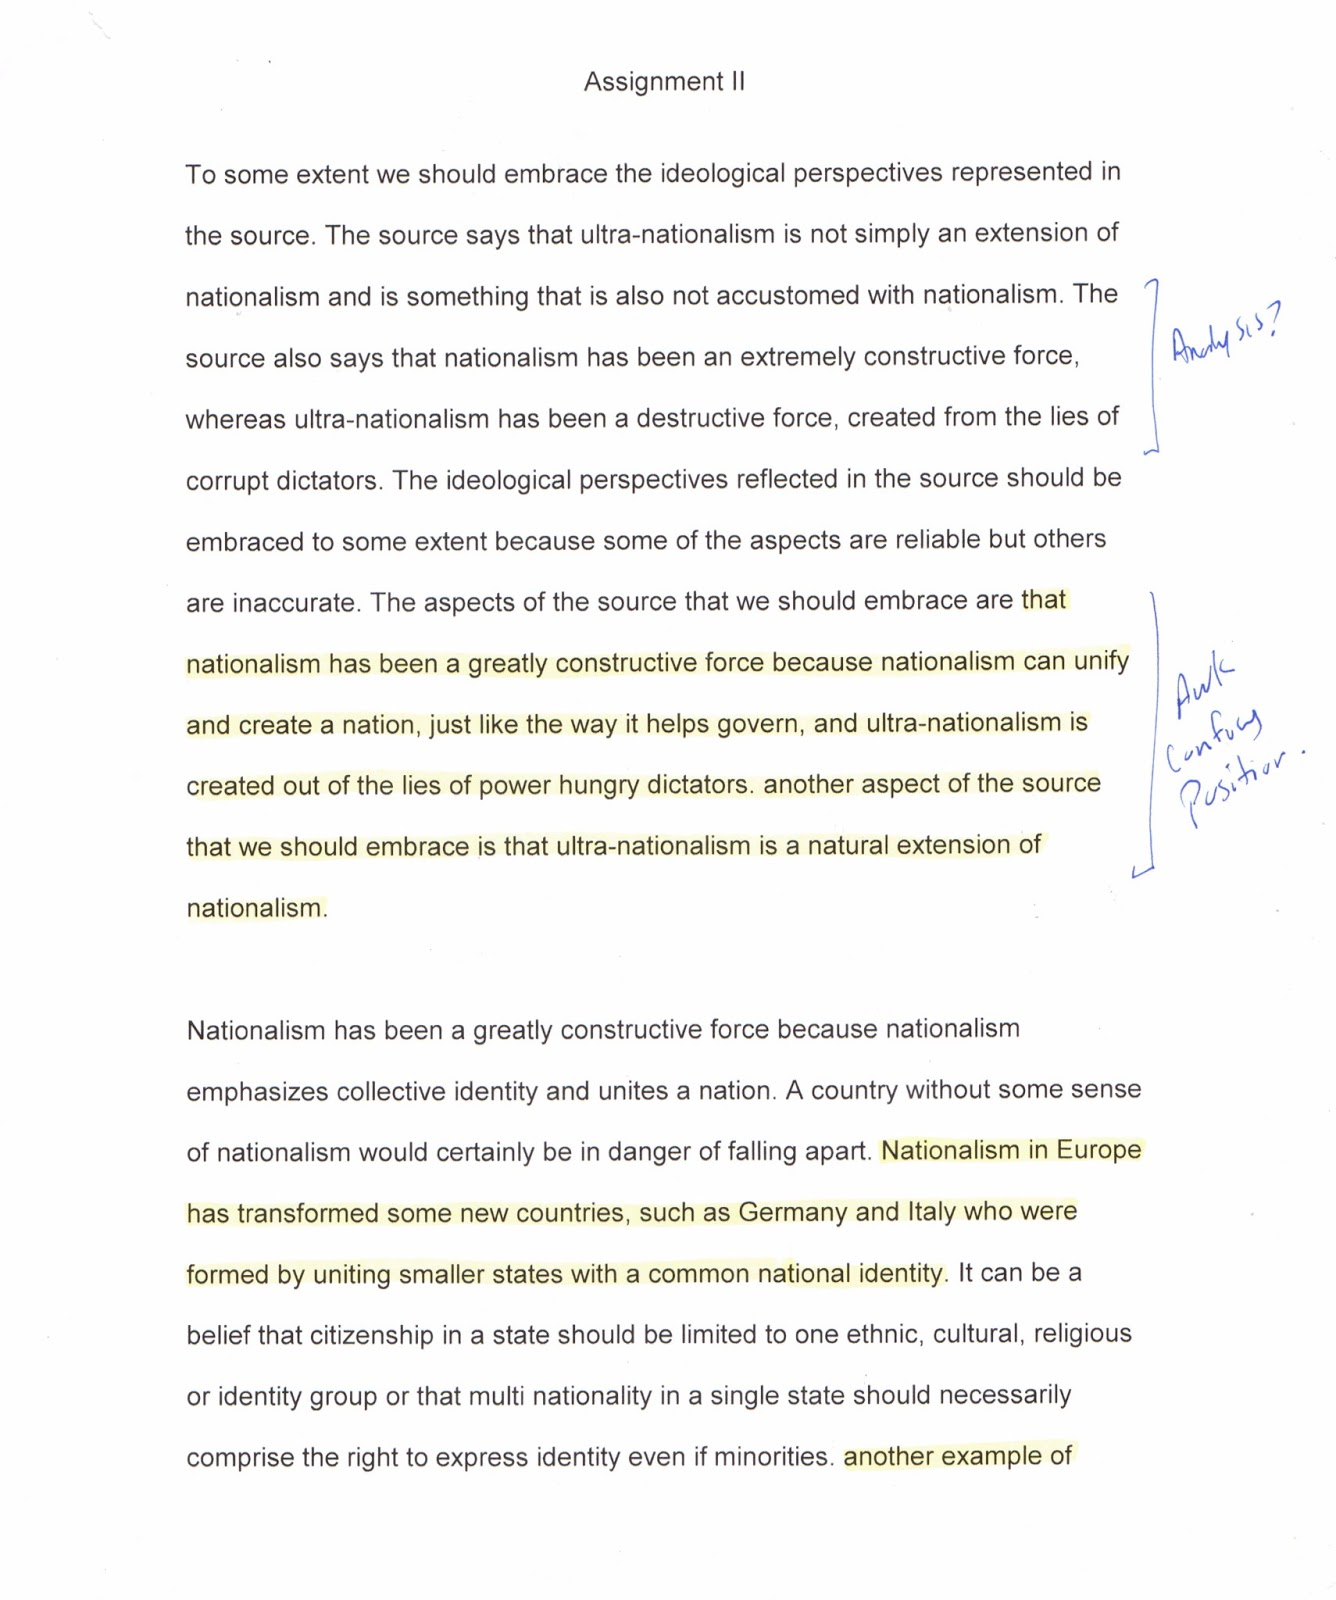 002 Assignment20ii20page201 Nationalism Essay Impressive Topics African Pdf Full